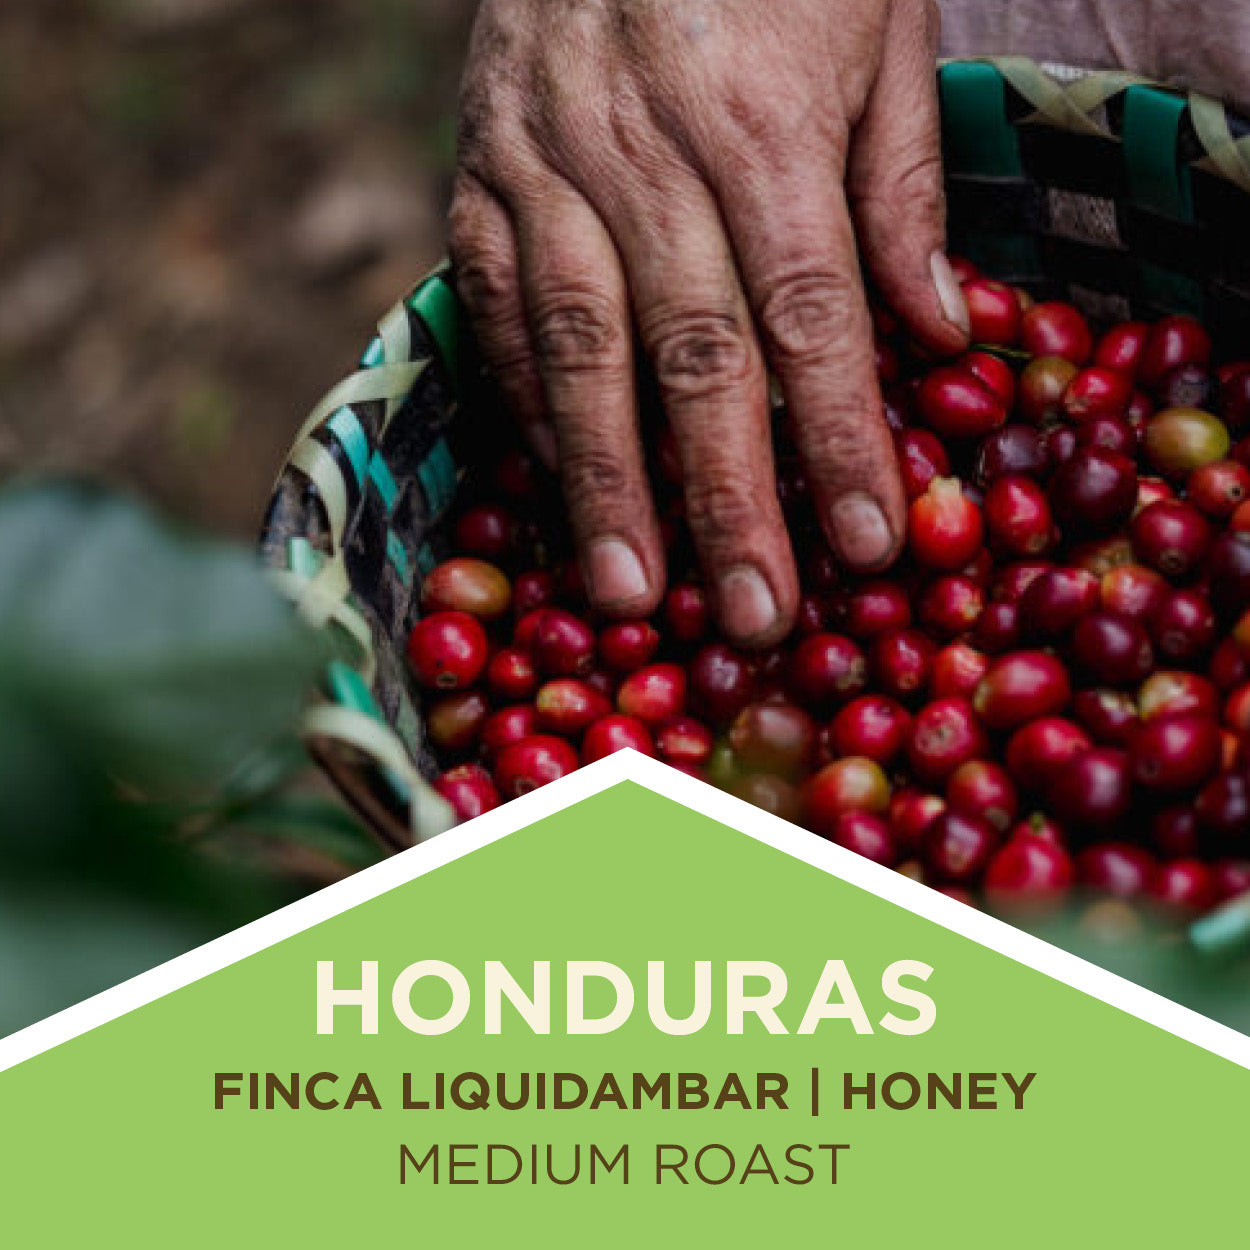 Honduras | Finca Liquidambar | Honey Process | Medium Roast